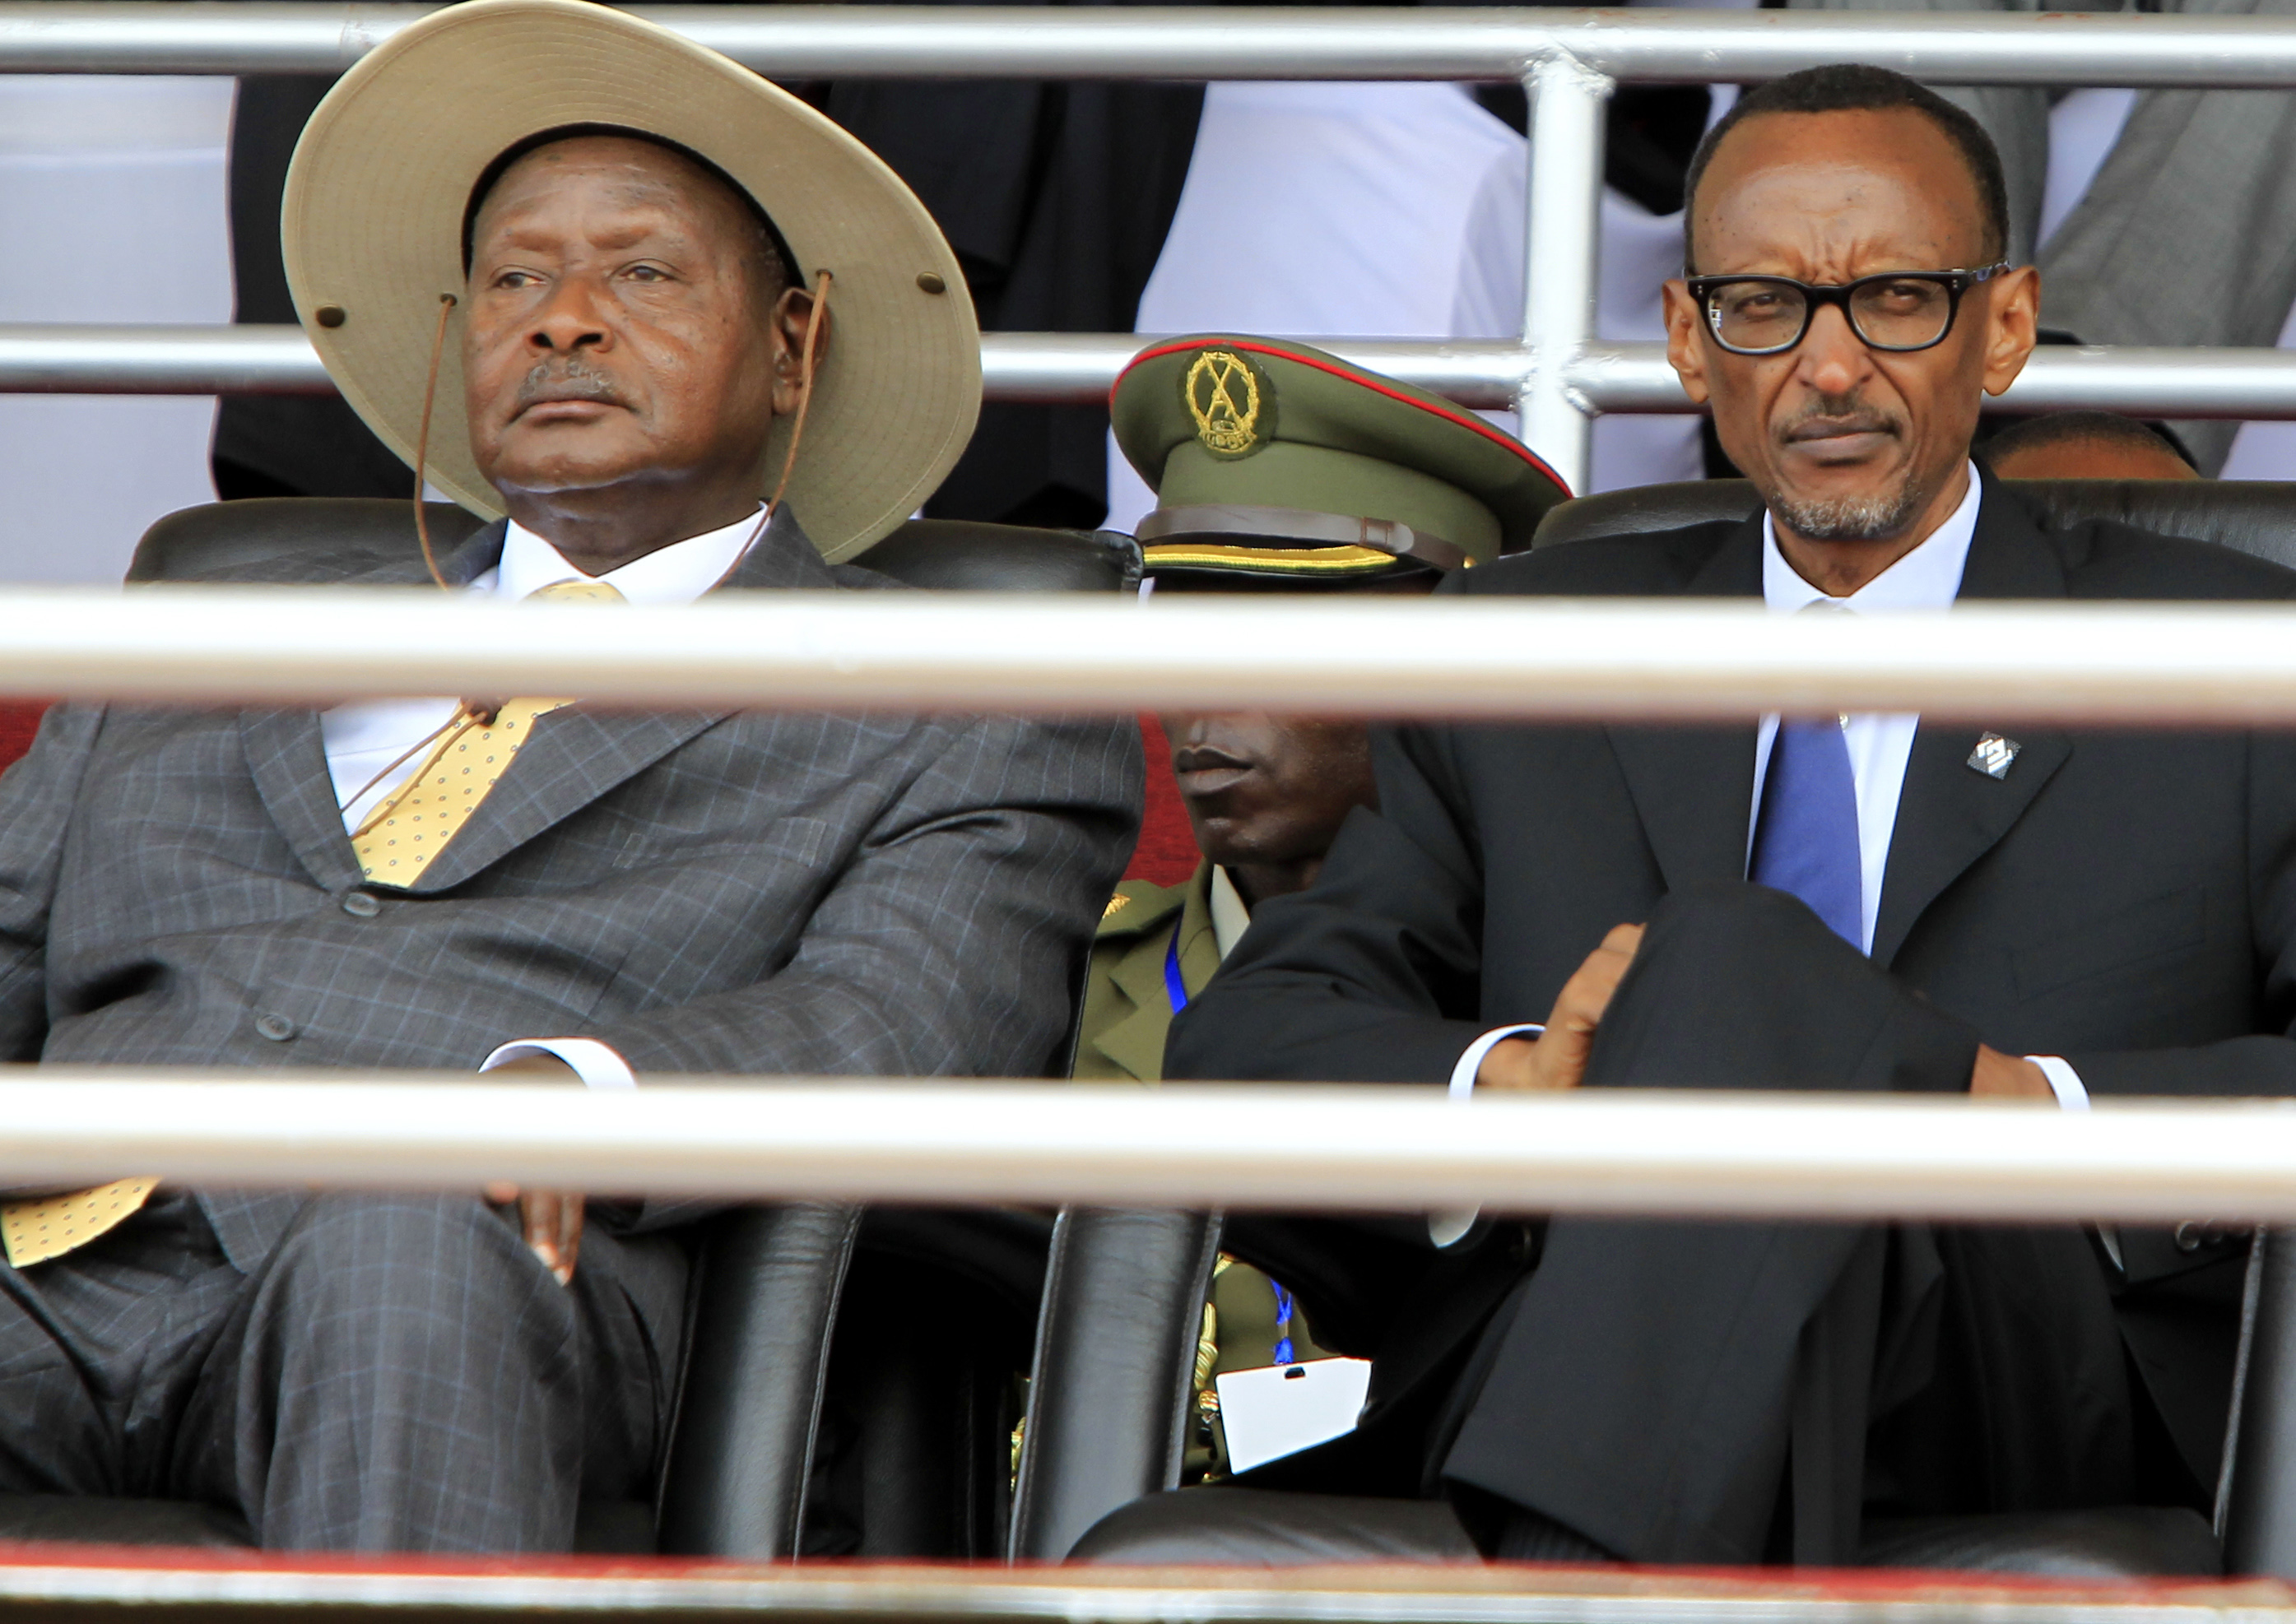 Rwandan President Paul Kagame (R) and his Ugandan counterpart Yoweri Museveni follow the proceedings of the 20th anniversary commemoration of the Rwandan genocide, in Kigali April 7, 2014. An estimated 800,000 people were killed in 100 days during the gen